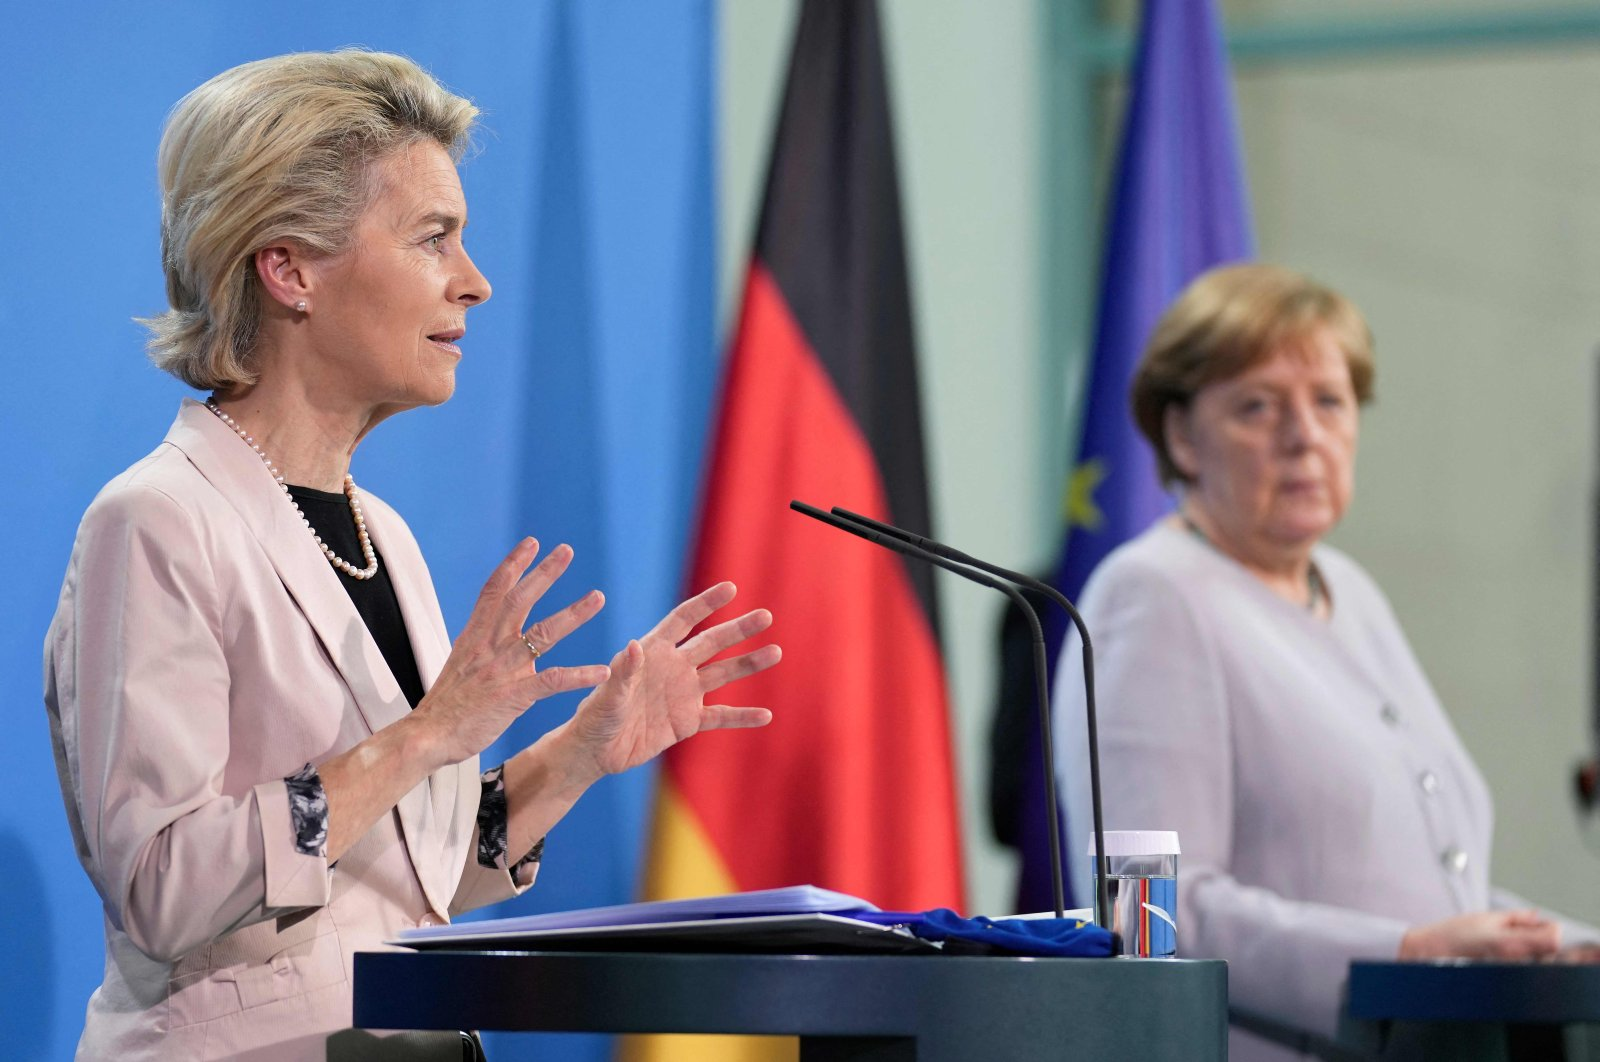 German Chancellor Angela Merkel (R) and European Commission President Ursula von der Leyen address the media during a joint press conference following a meeting in Berlin, Germany, on June 22, 2021. (Photo by Michael Sohn / POOL / AFP)